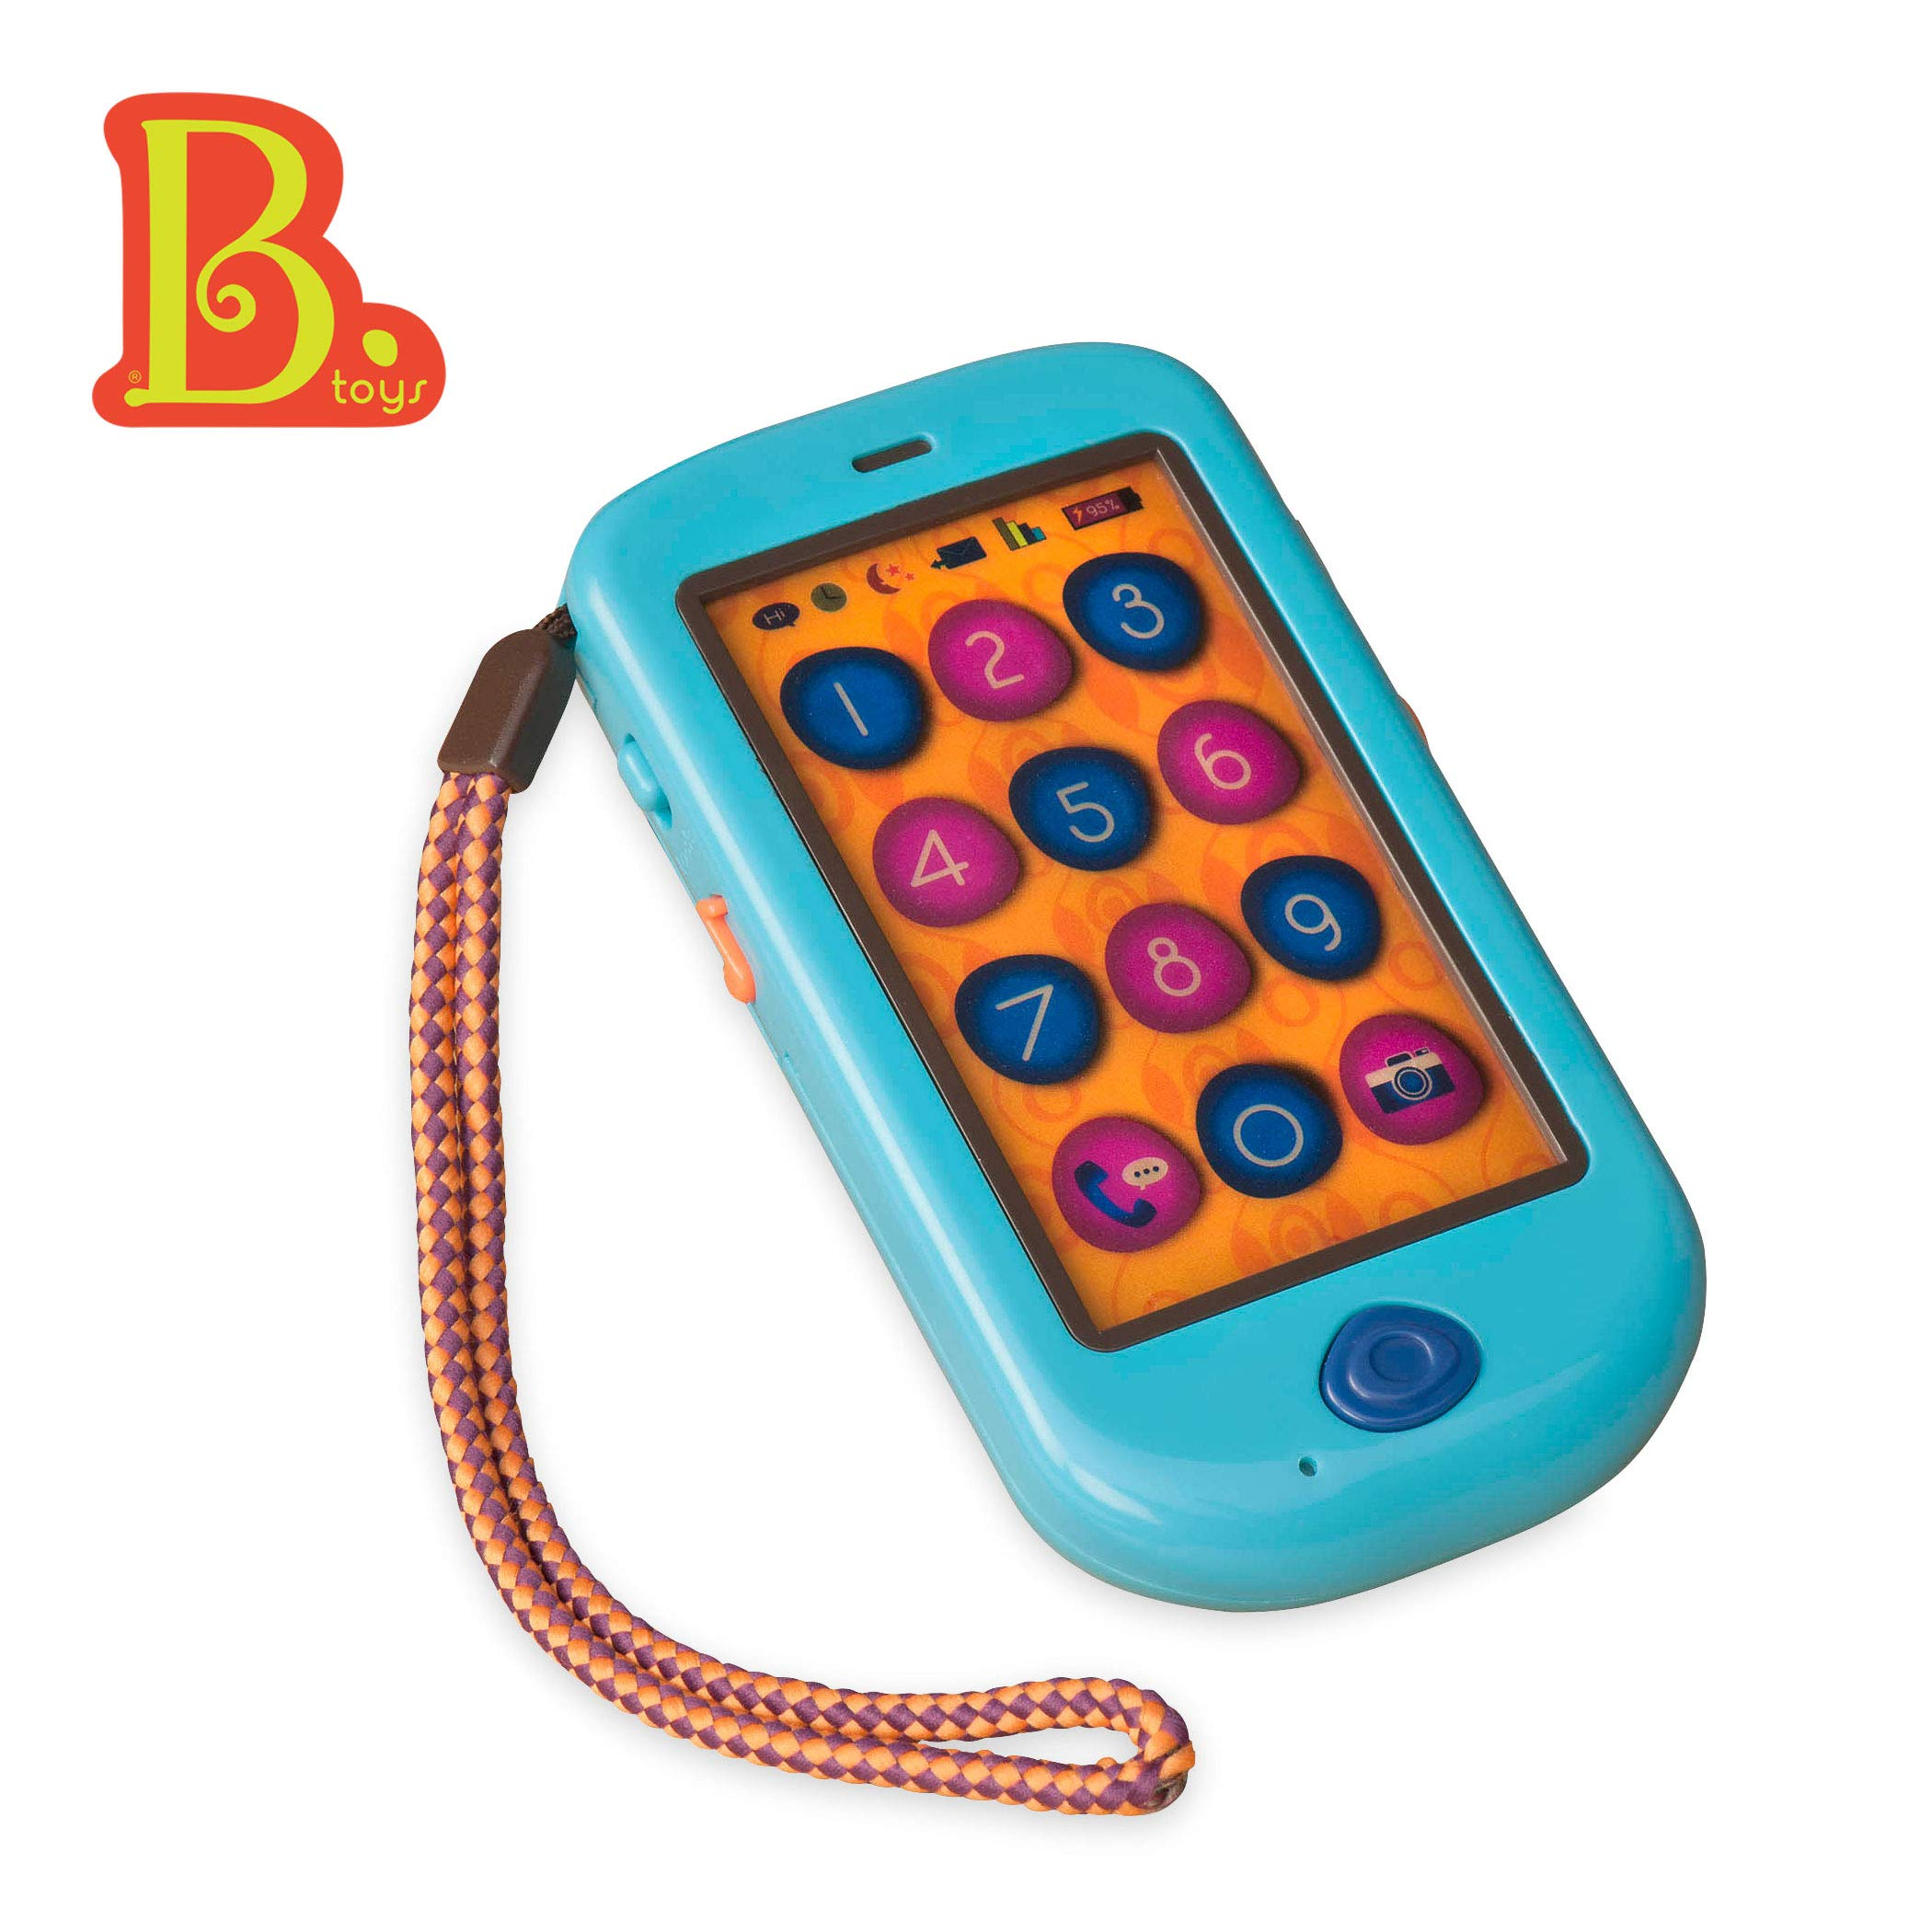 B. Toys - HiPhone Toy Smart Phone - Kids Play Phone with Sounds Music & Voice Messages - Toddler Toy Phone with Message Recorder - 100% Non-Toxic & BPA-free by B. toys by Battat